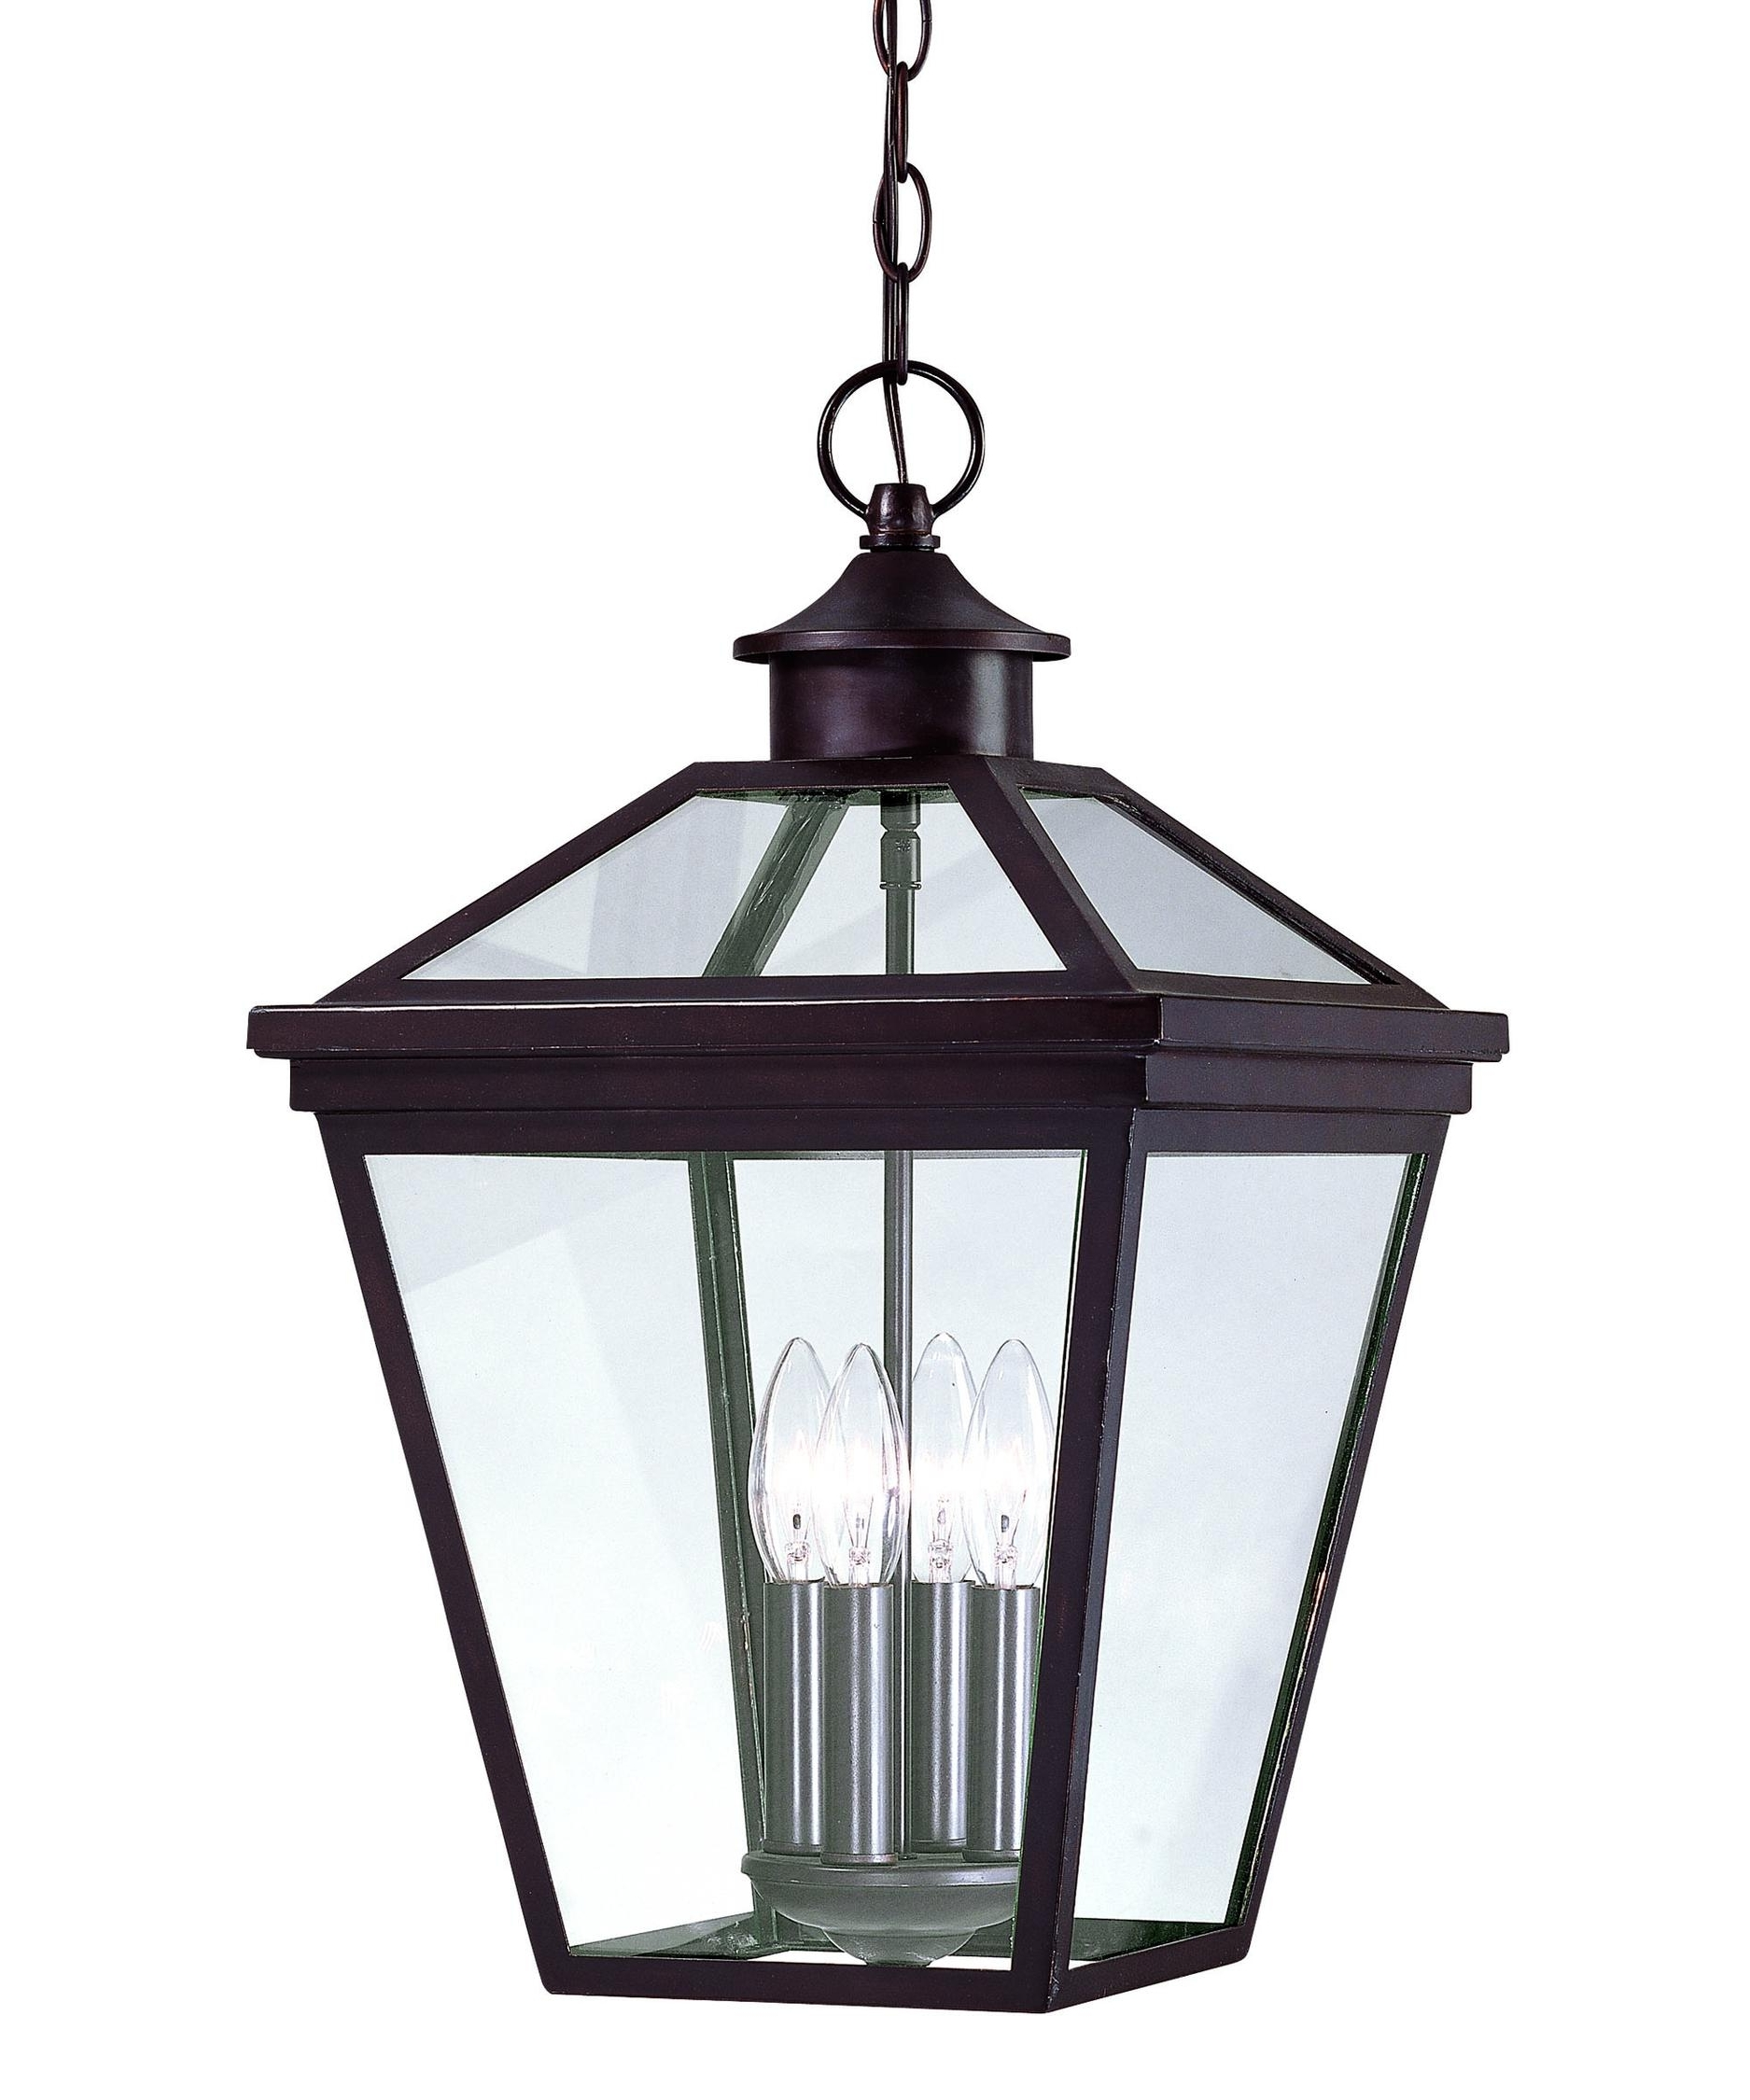 White Outdoor Hanging Lights Throughout Most Up To Date Wide Outdoor Hanging Light With 4 Lamps (View 19 of 20)